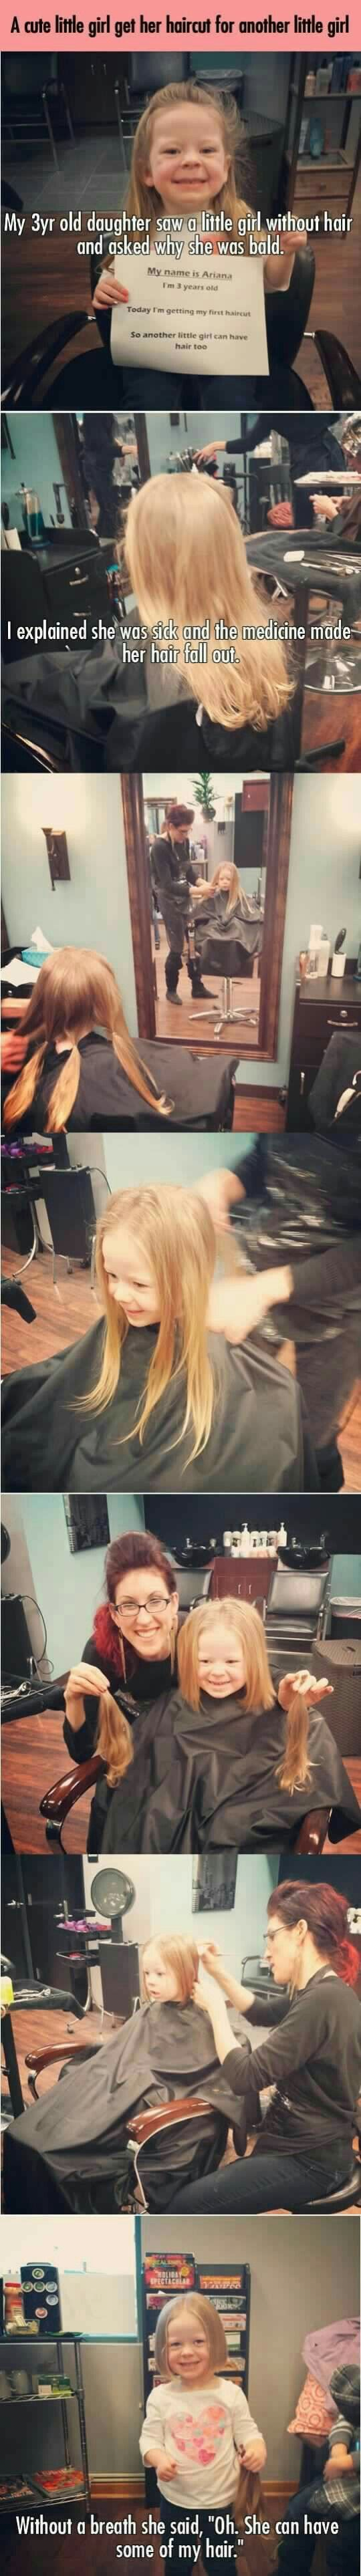 Flawless little princess we can all learn from this child. (IT SHOWS THAT YOU ARE NEVER TO YOUNG TO BE A HUMANITARIAN)